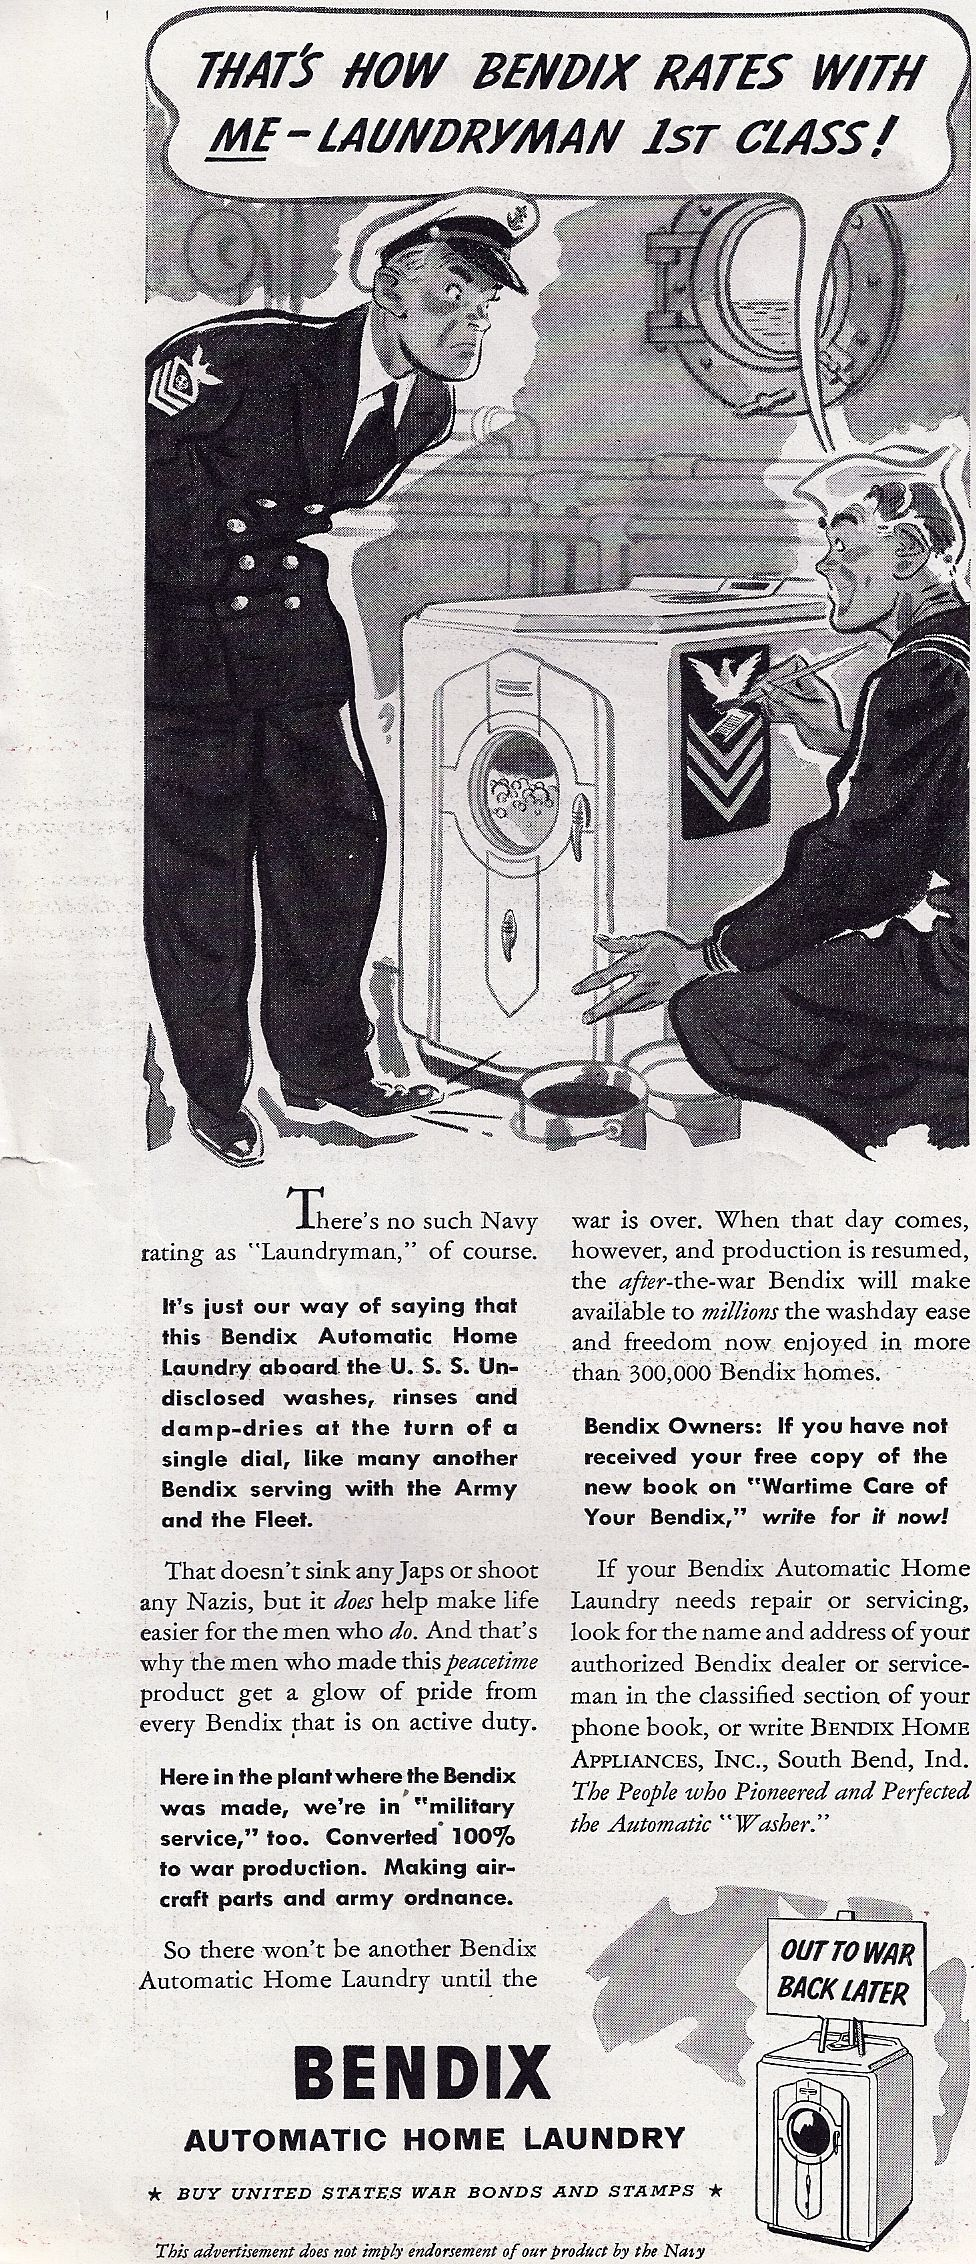 Pin by Woodiegriffith on WWII adds | Funny vintage ads